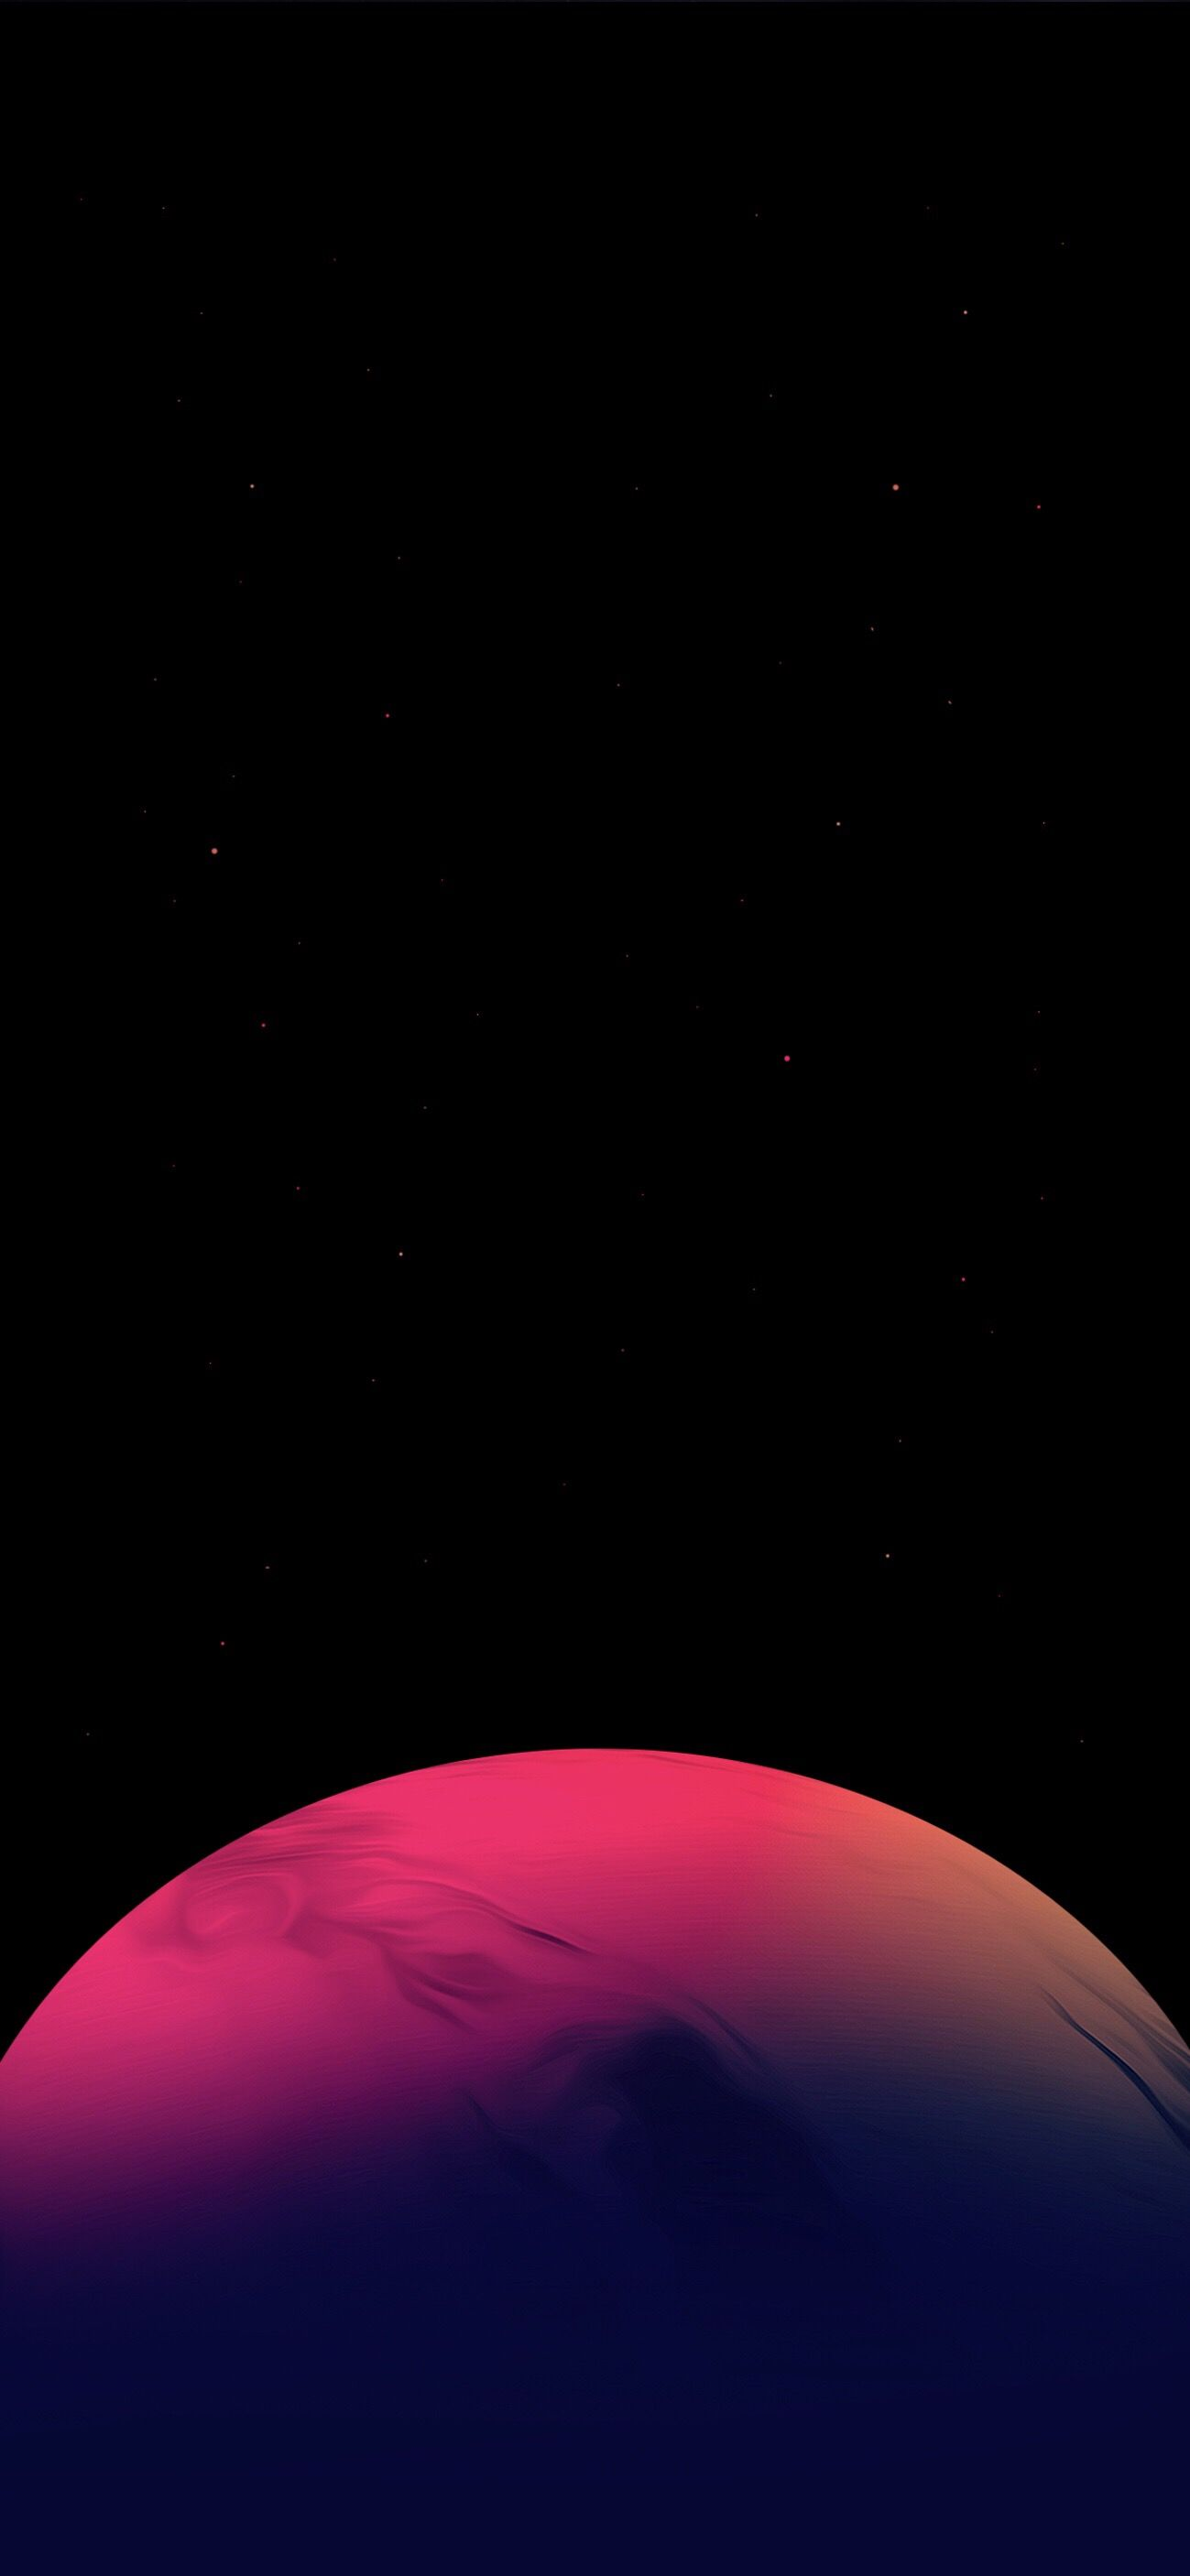 Pin By Ashley Grohregin On Other Stuff Space Iphone Wallpaper Android Wallpaper Wallpaper Space